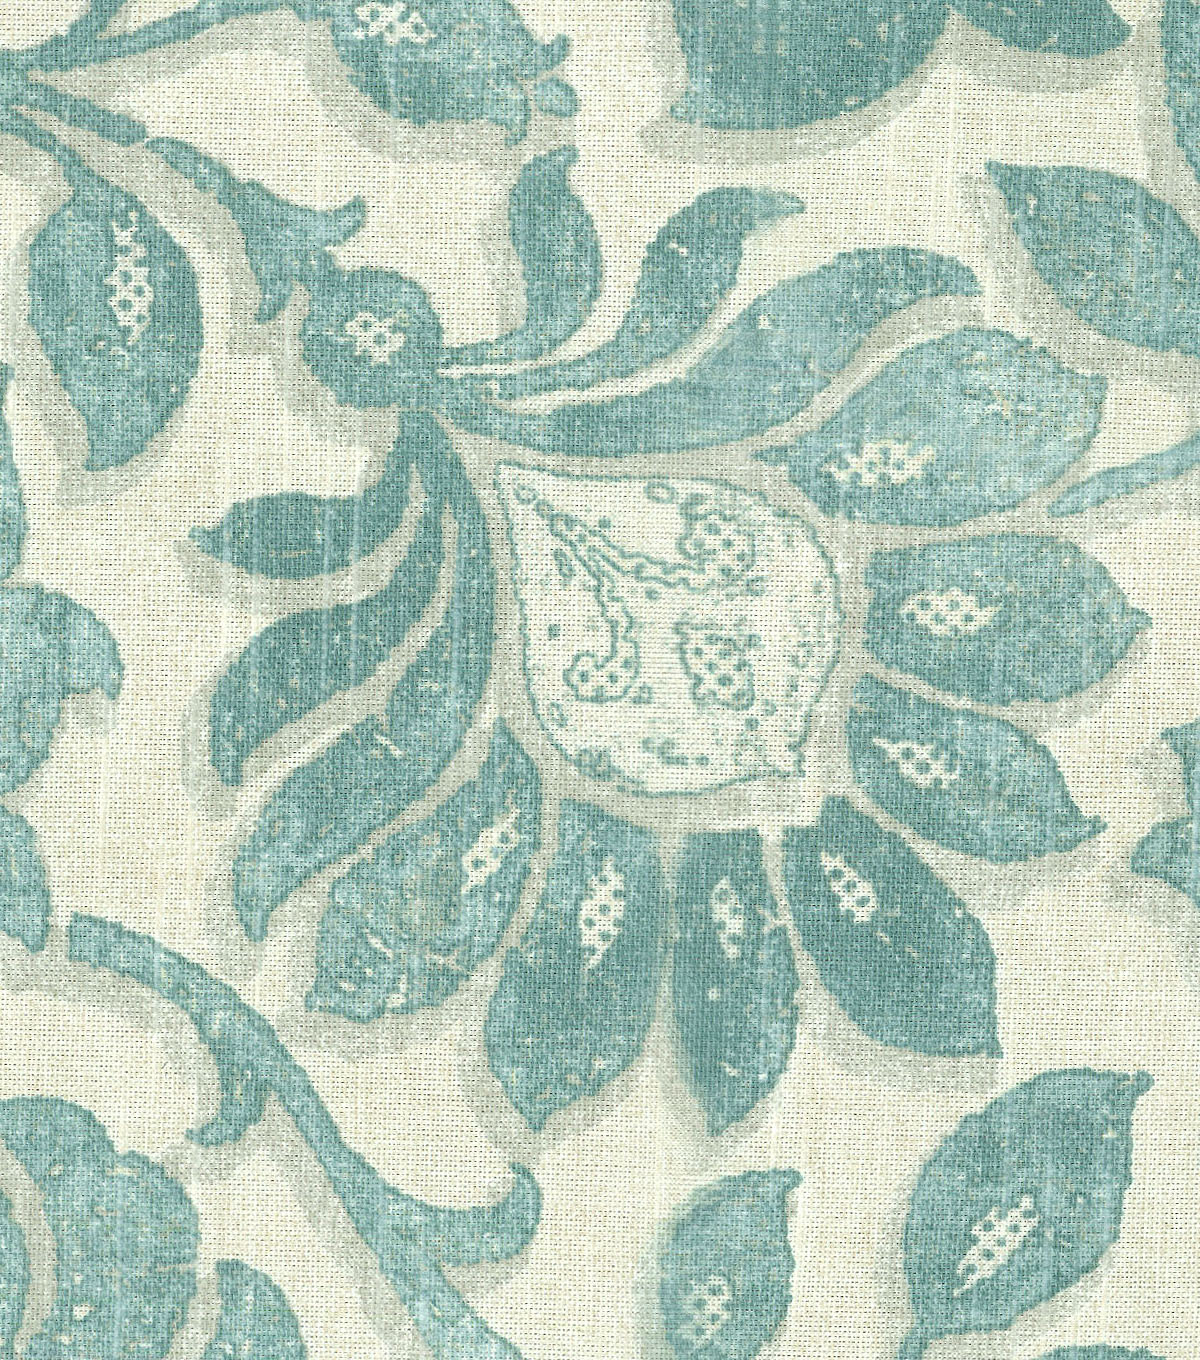 Waverly Upholstery Fabric 13x13\u0022 Swatch-Imaginary Bliss